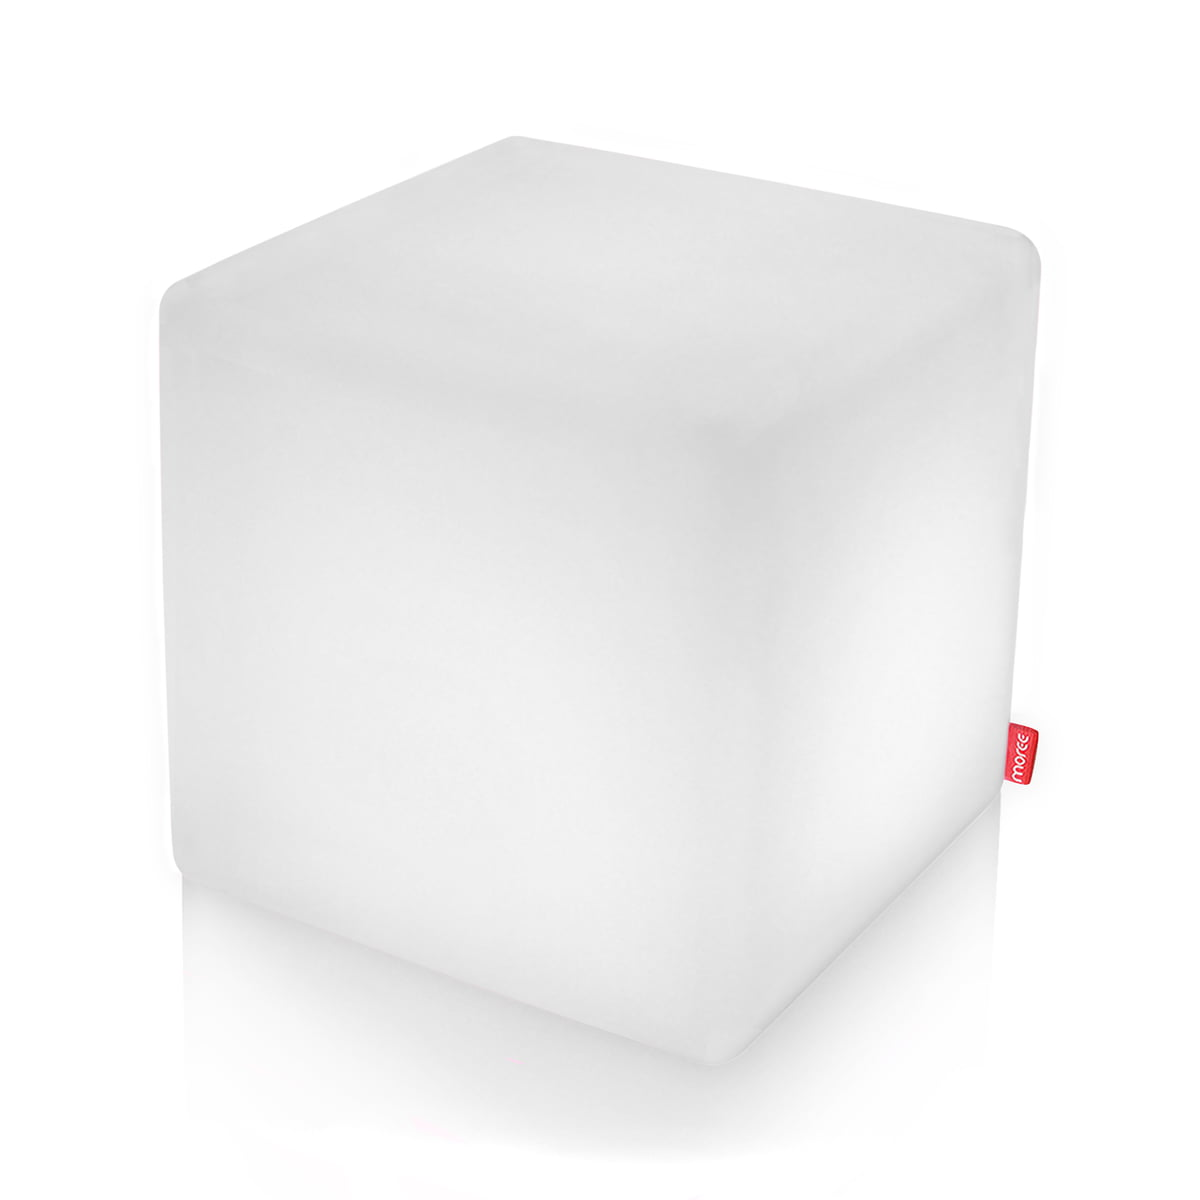 translucent furniture. Moree - Cube Outdoor LED, Translucent-white Translucent Furniture